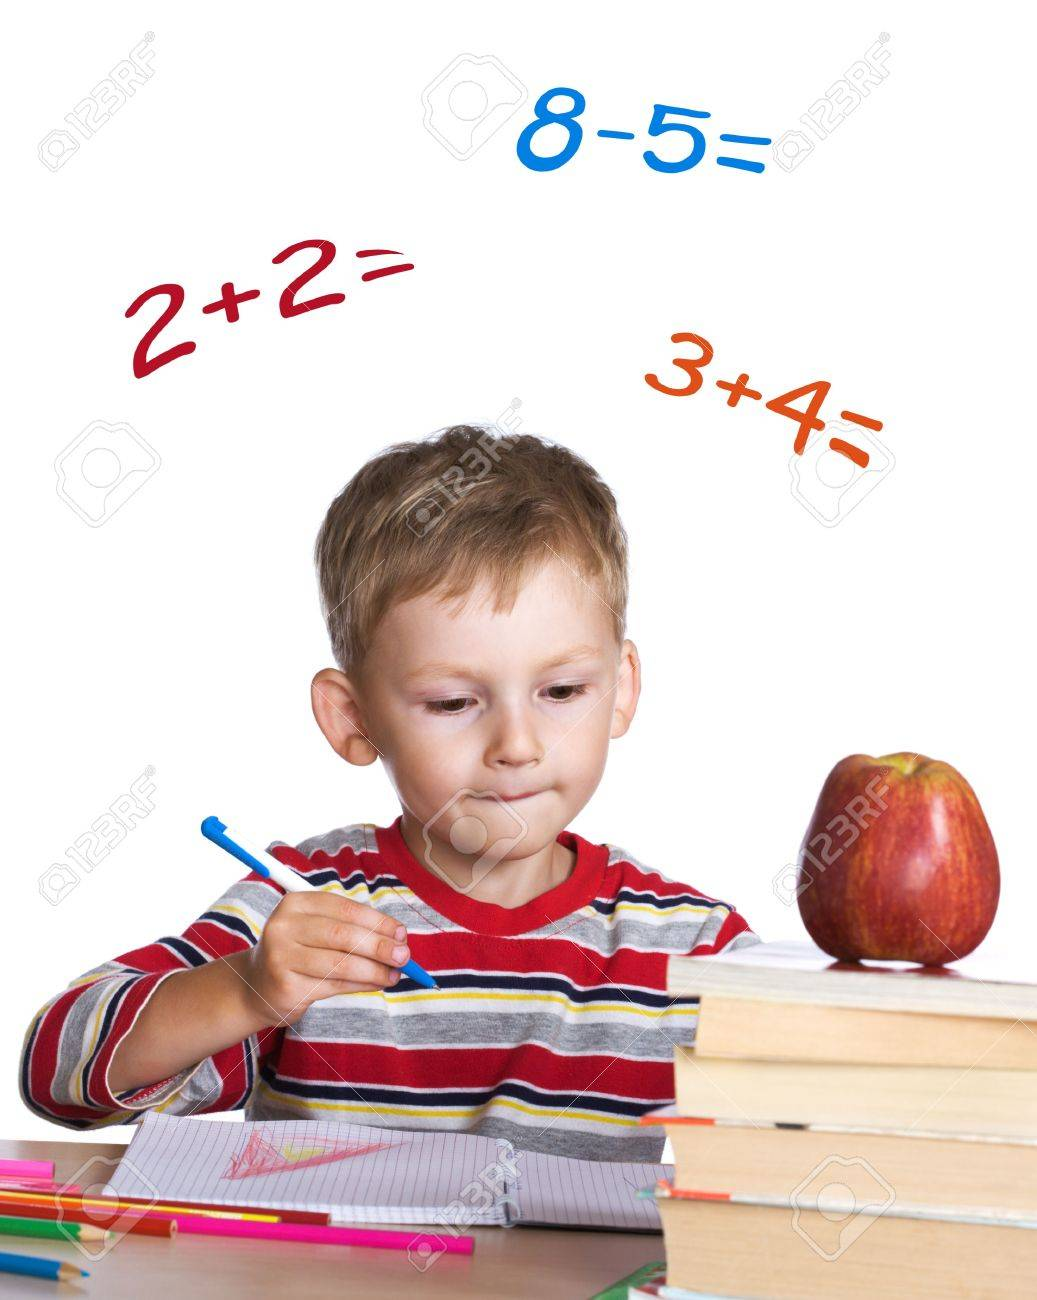 Worksheet Learning Math little student learning math stock photo picture and royalty free 3384437